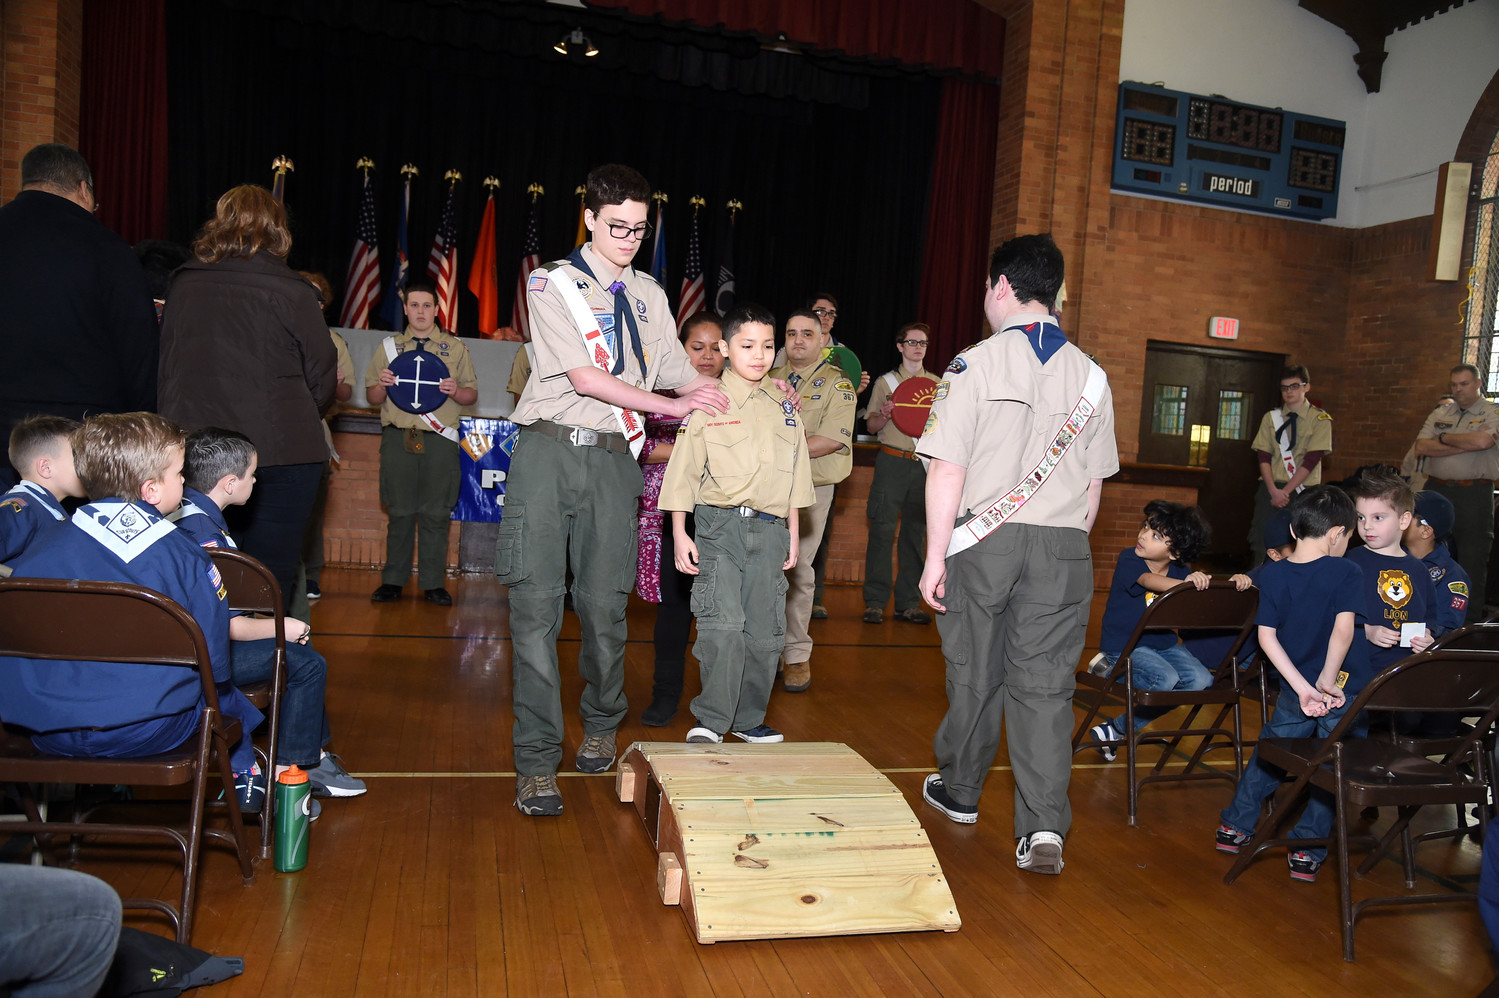 Benjamin Amirazodi, 11, bridged over to boy scouts.